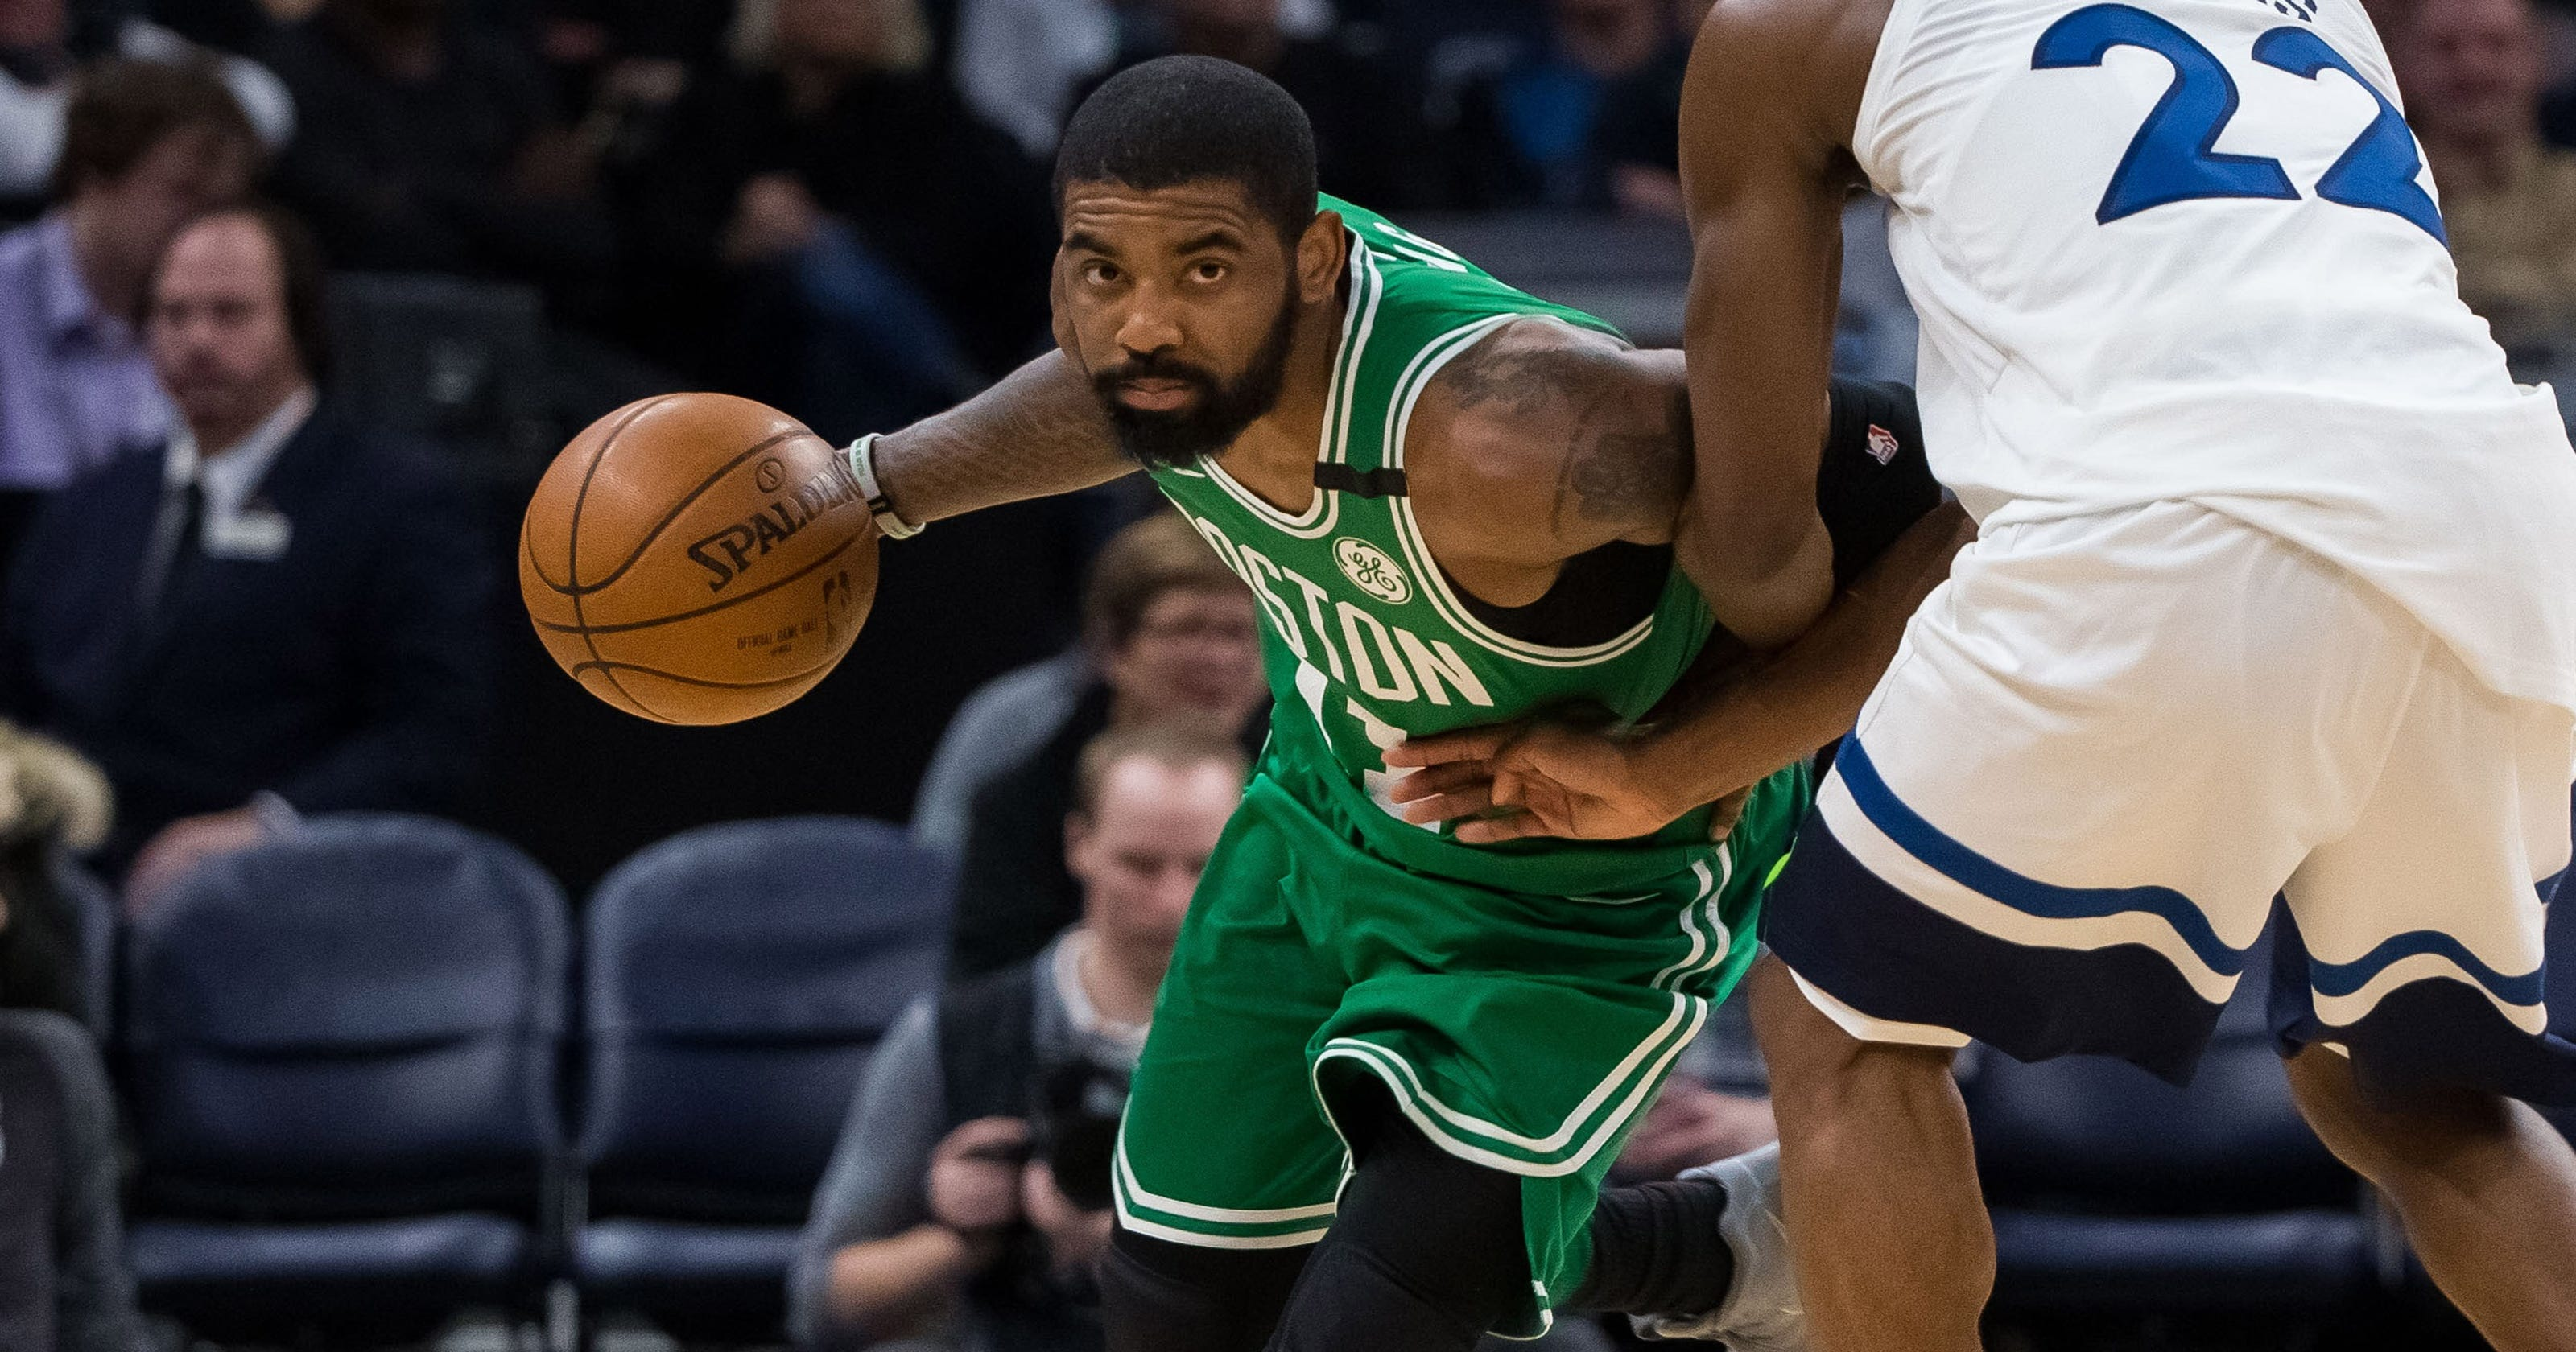 c0e829bc2 Celtics top T wolves to clinch playoff spot after Jaylen Brown injury